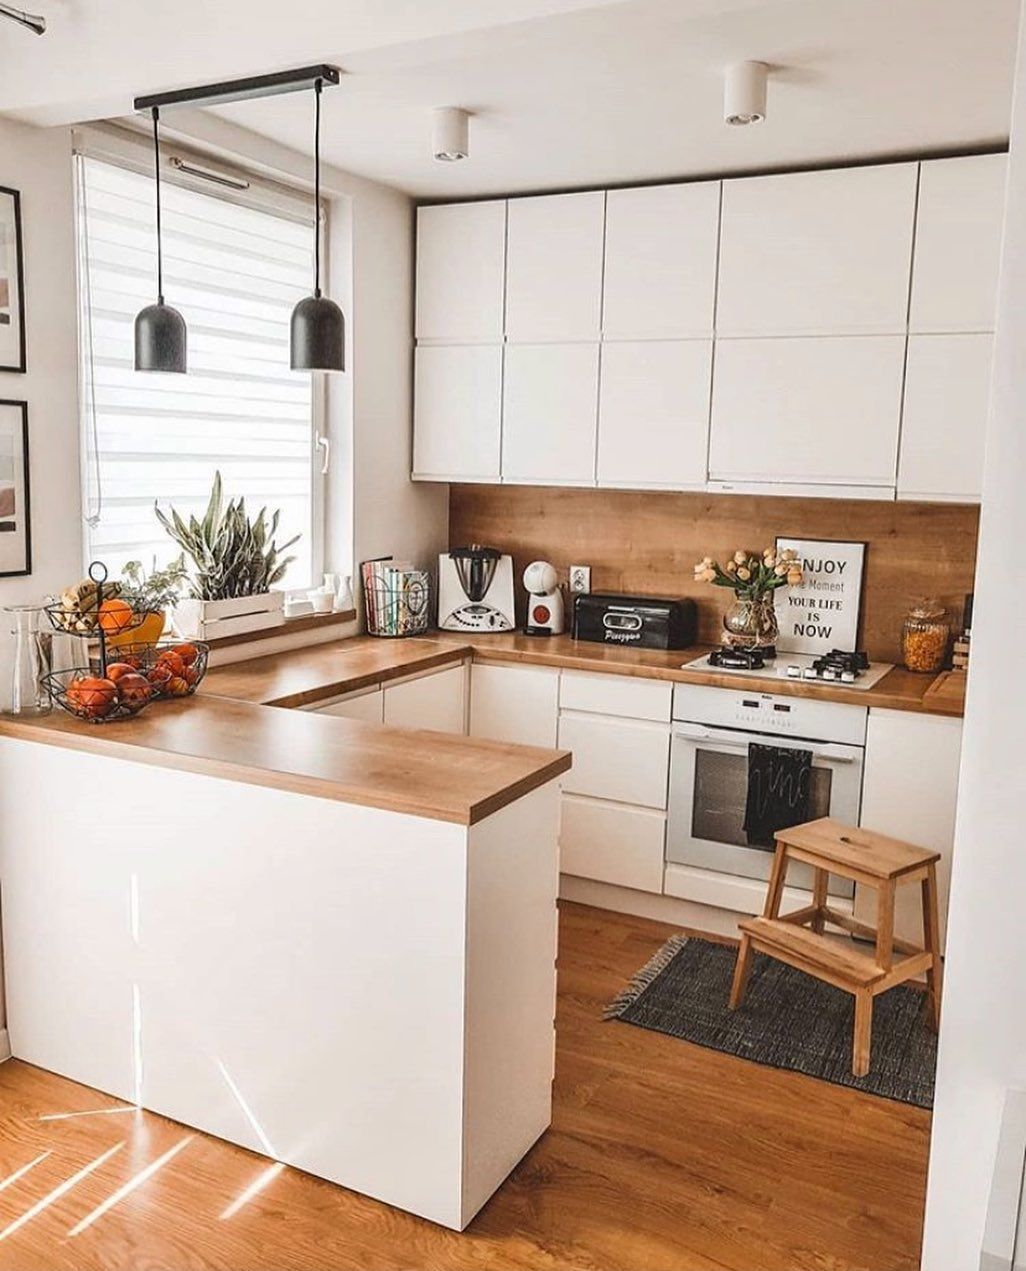 """@cozyhomeshots shared a photo on Instagram: """"Hello🙌 Loving the synergy of clean white and warm wood in this beautiful kitchen of @karolina_niznik🧡 Wishing you all a tasty Tuesday🤗…"""" • Apr 28, 2020 at 9:06am UTC"""